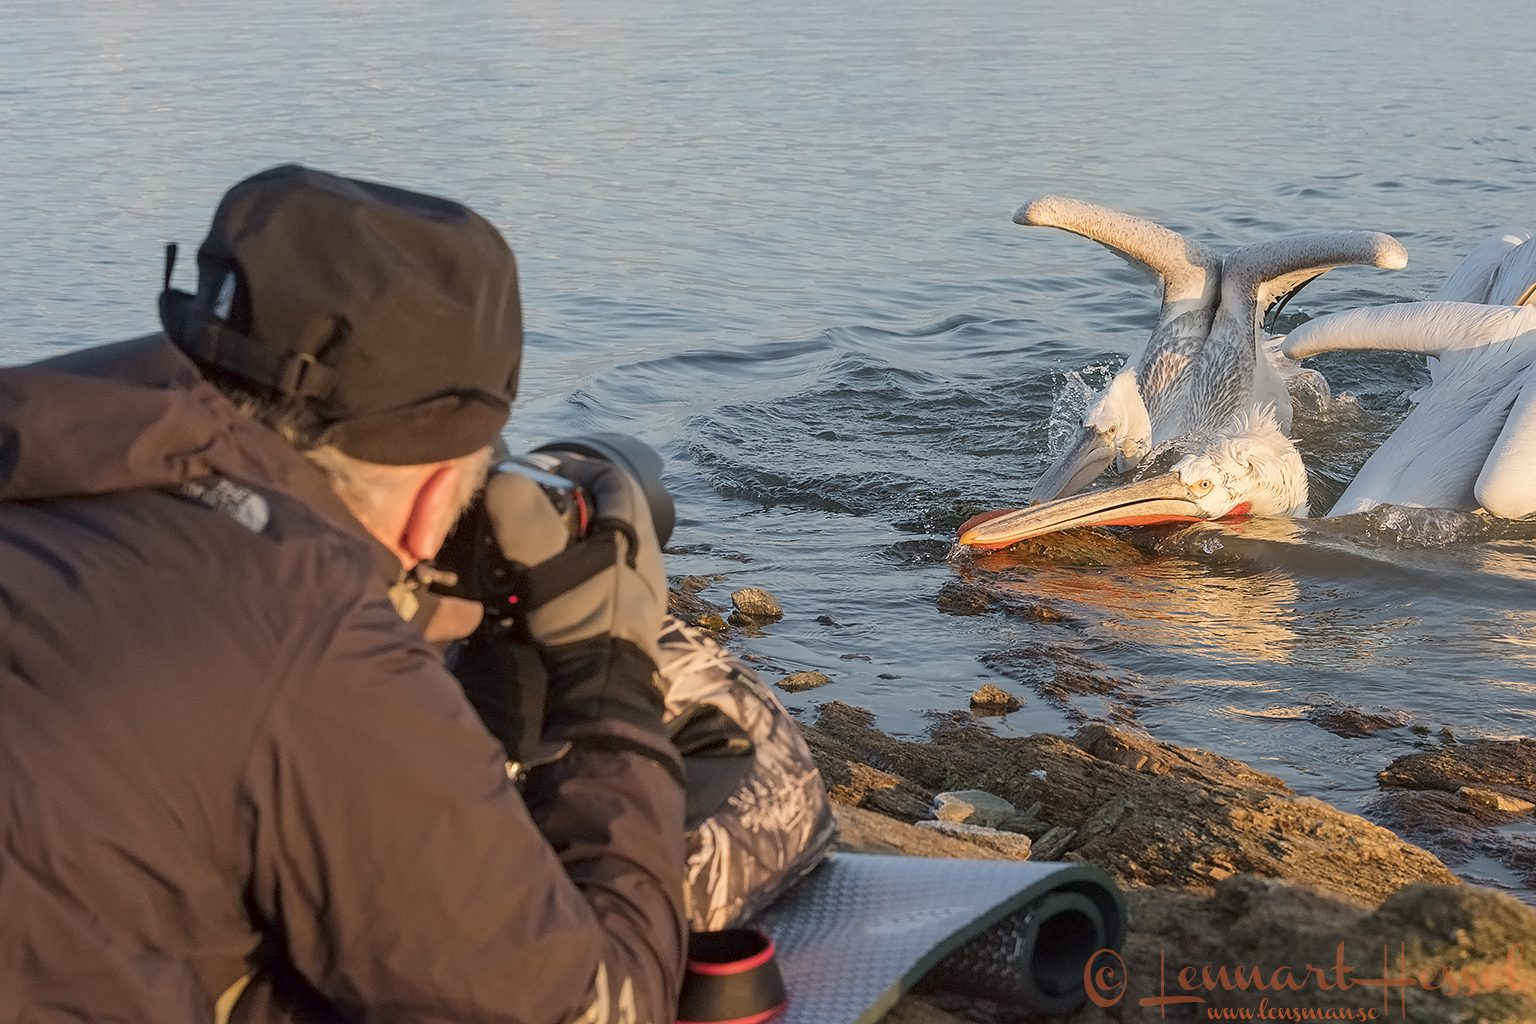 Dalmatian Pelican Lake Kerkini workshop